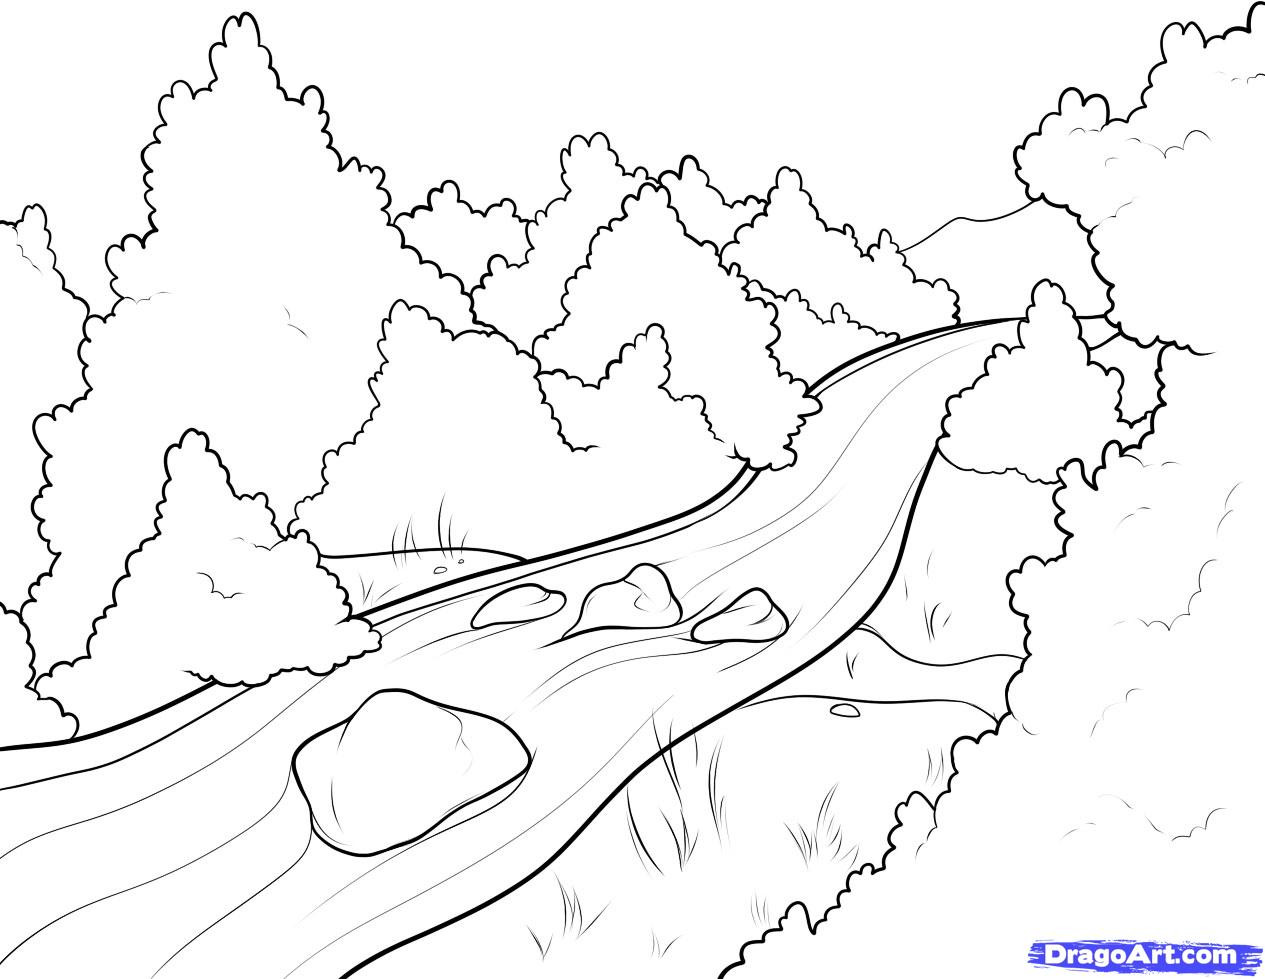 Best ideas about River Coloring Pages . Save or Pin How to Draw a River Step by Step Landscapes Landmarks Now.